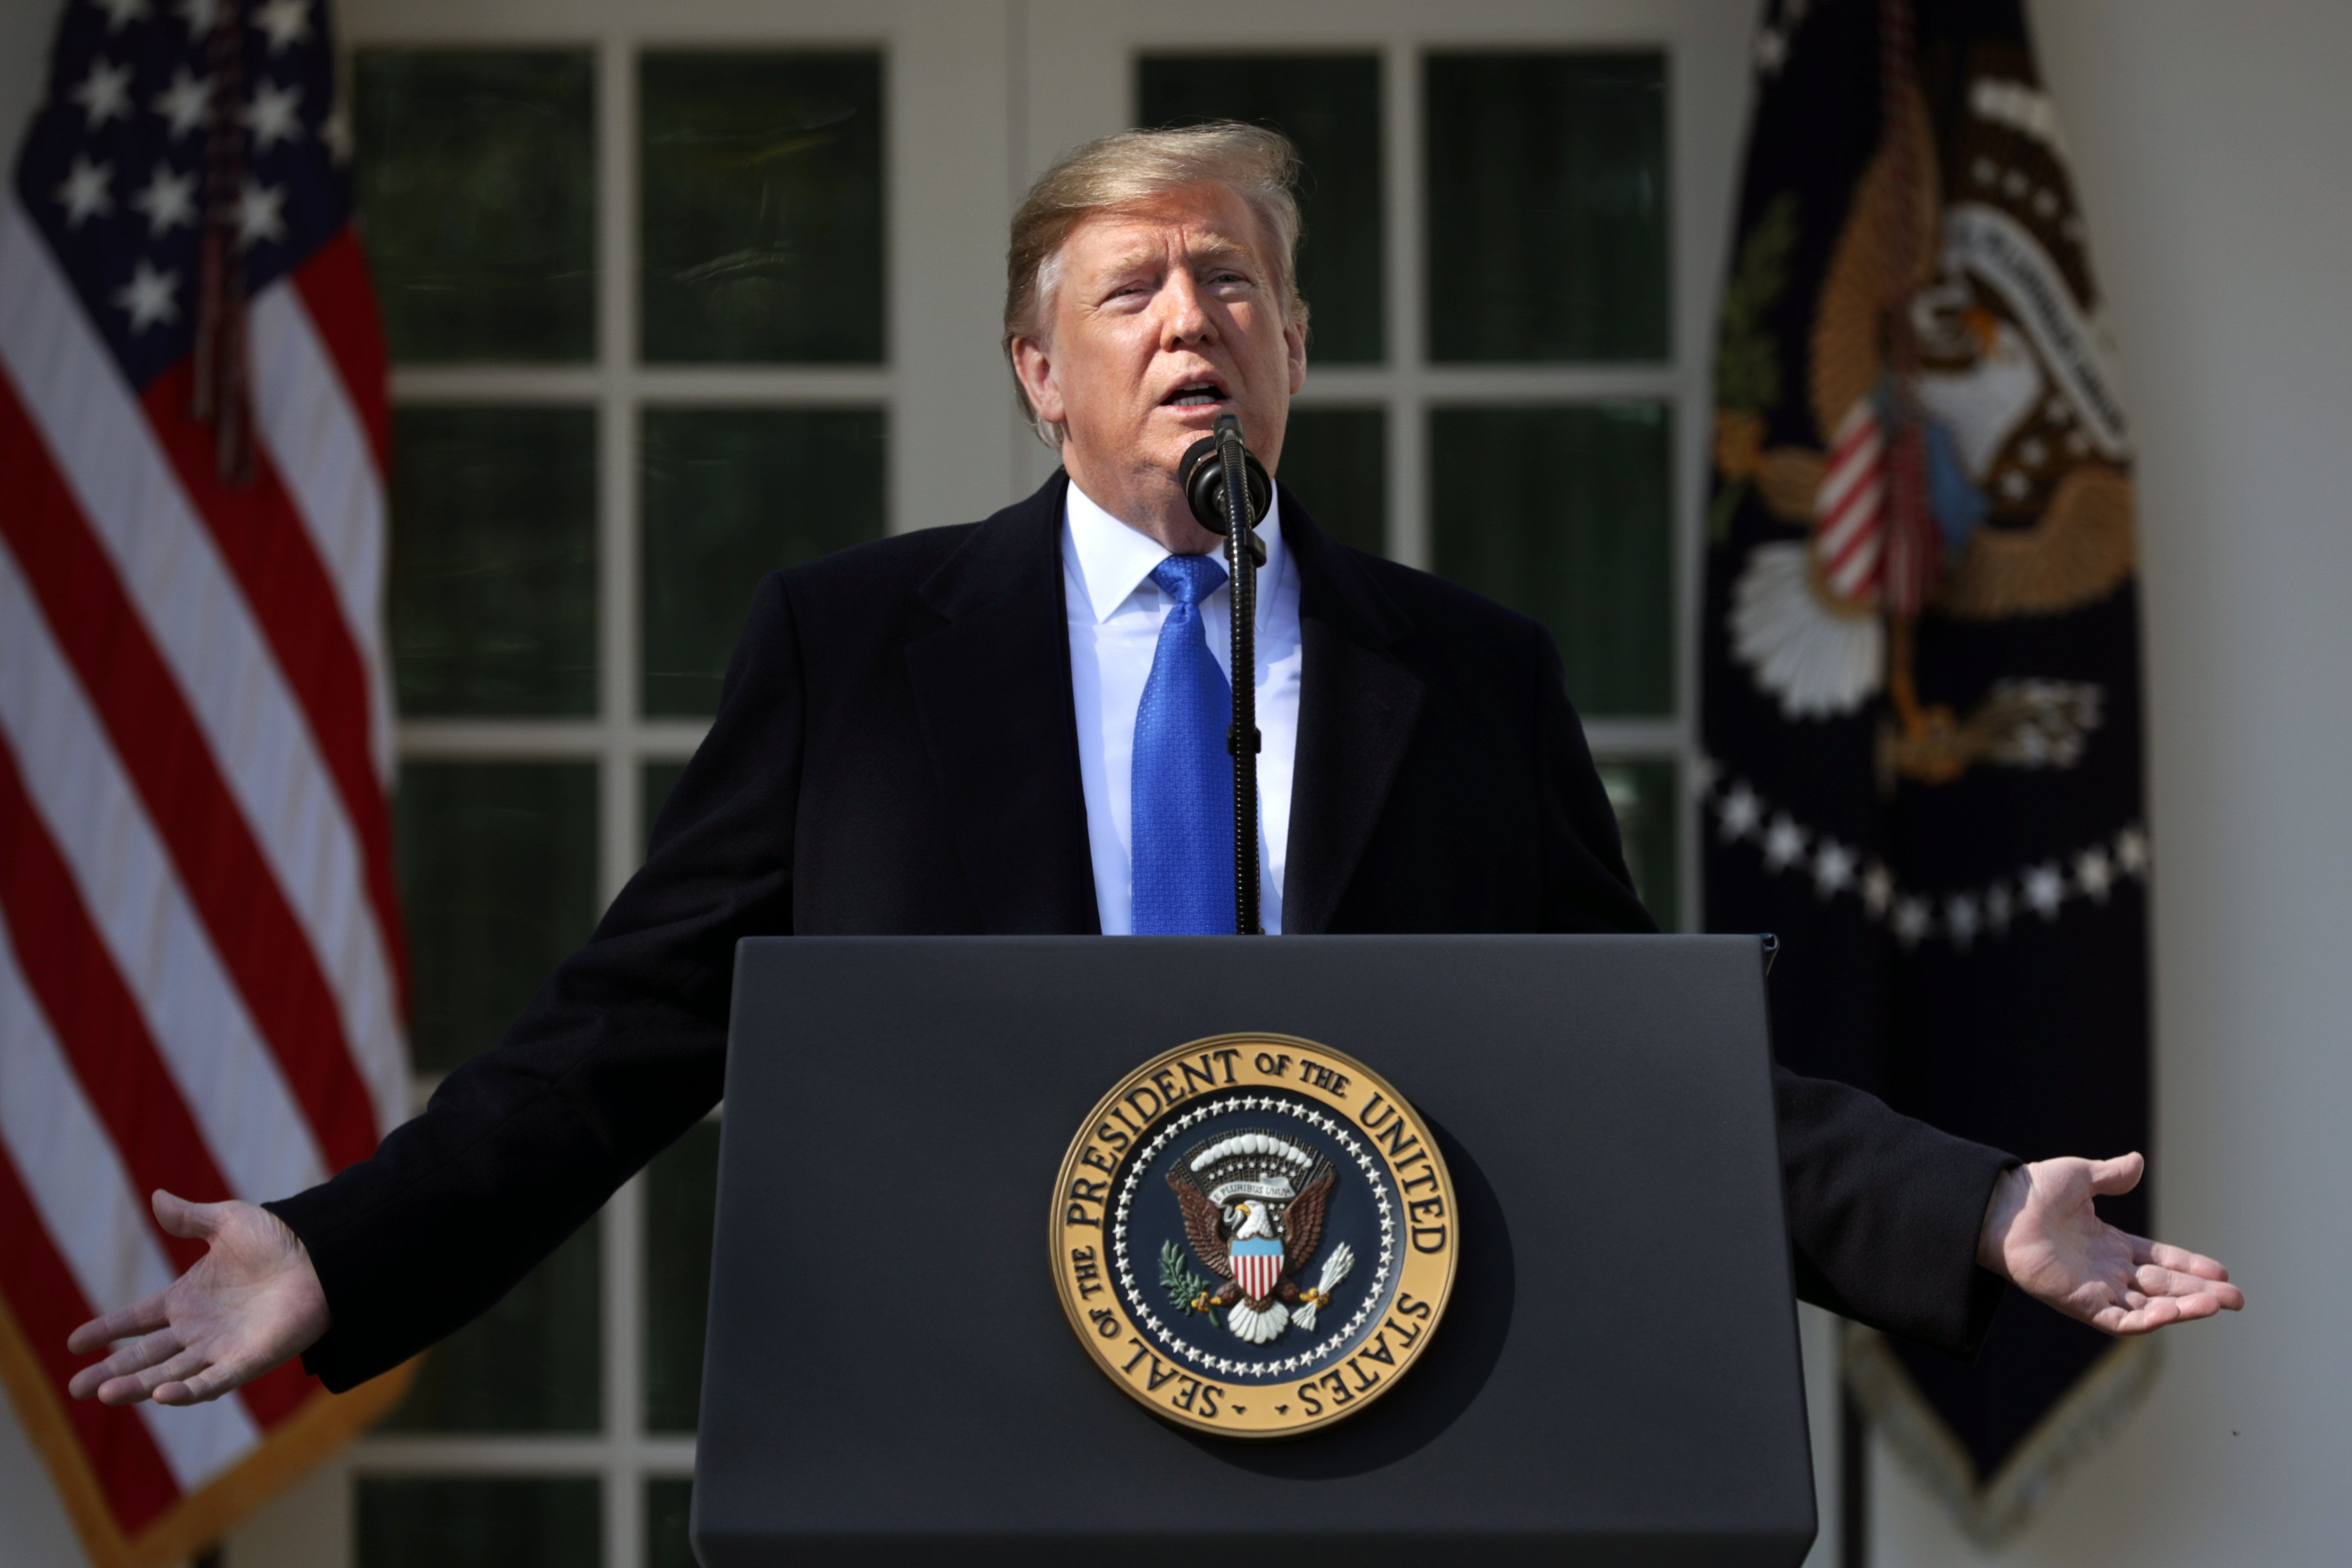 President Donald Trump delivering his National Emergency declaration speech at the White House | Photo: Getty Images